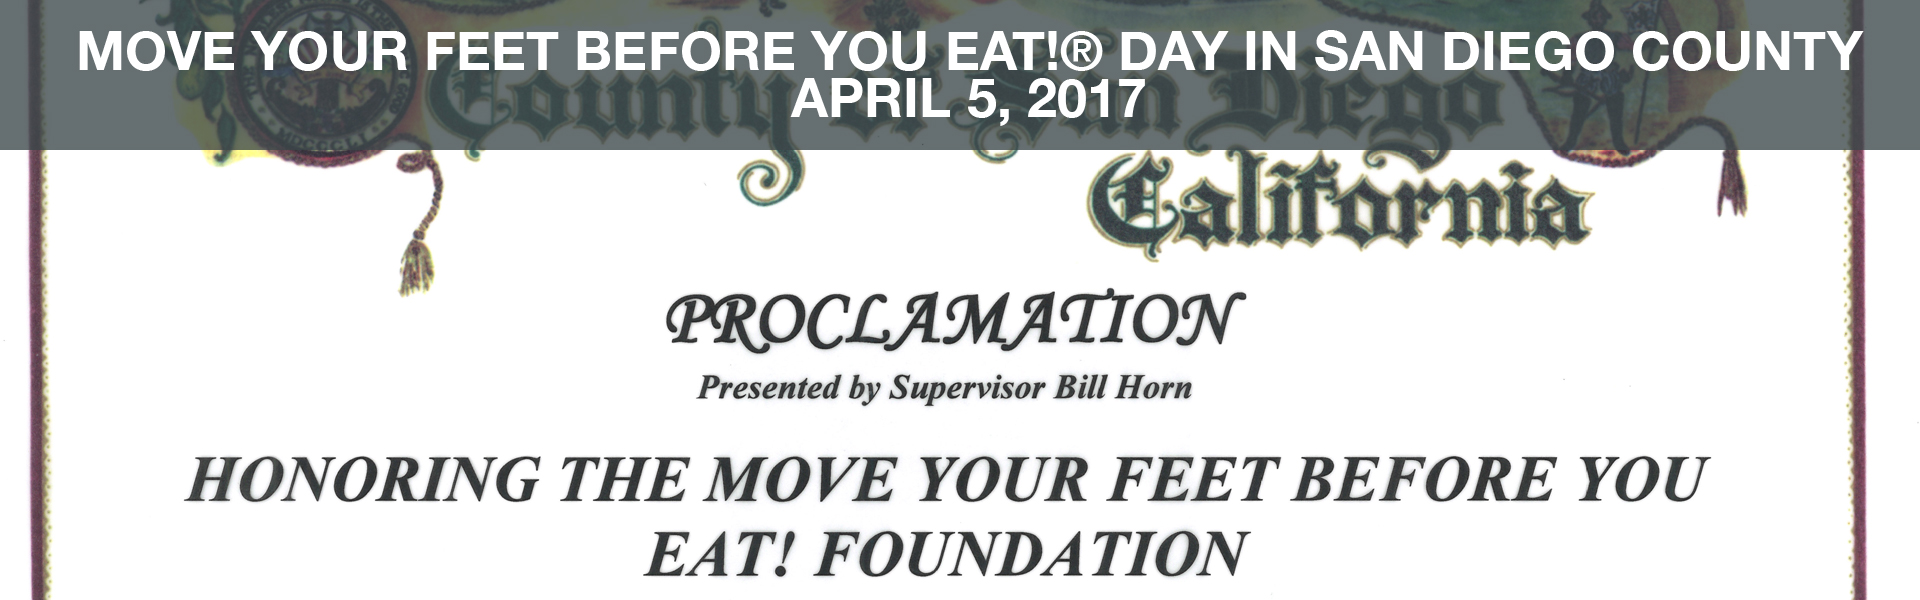 move your feet before you eat day san diego county